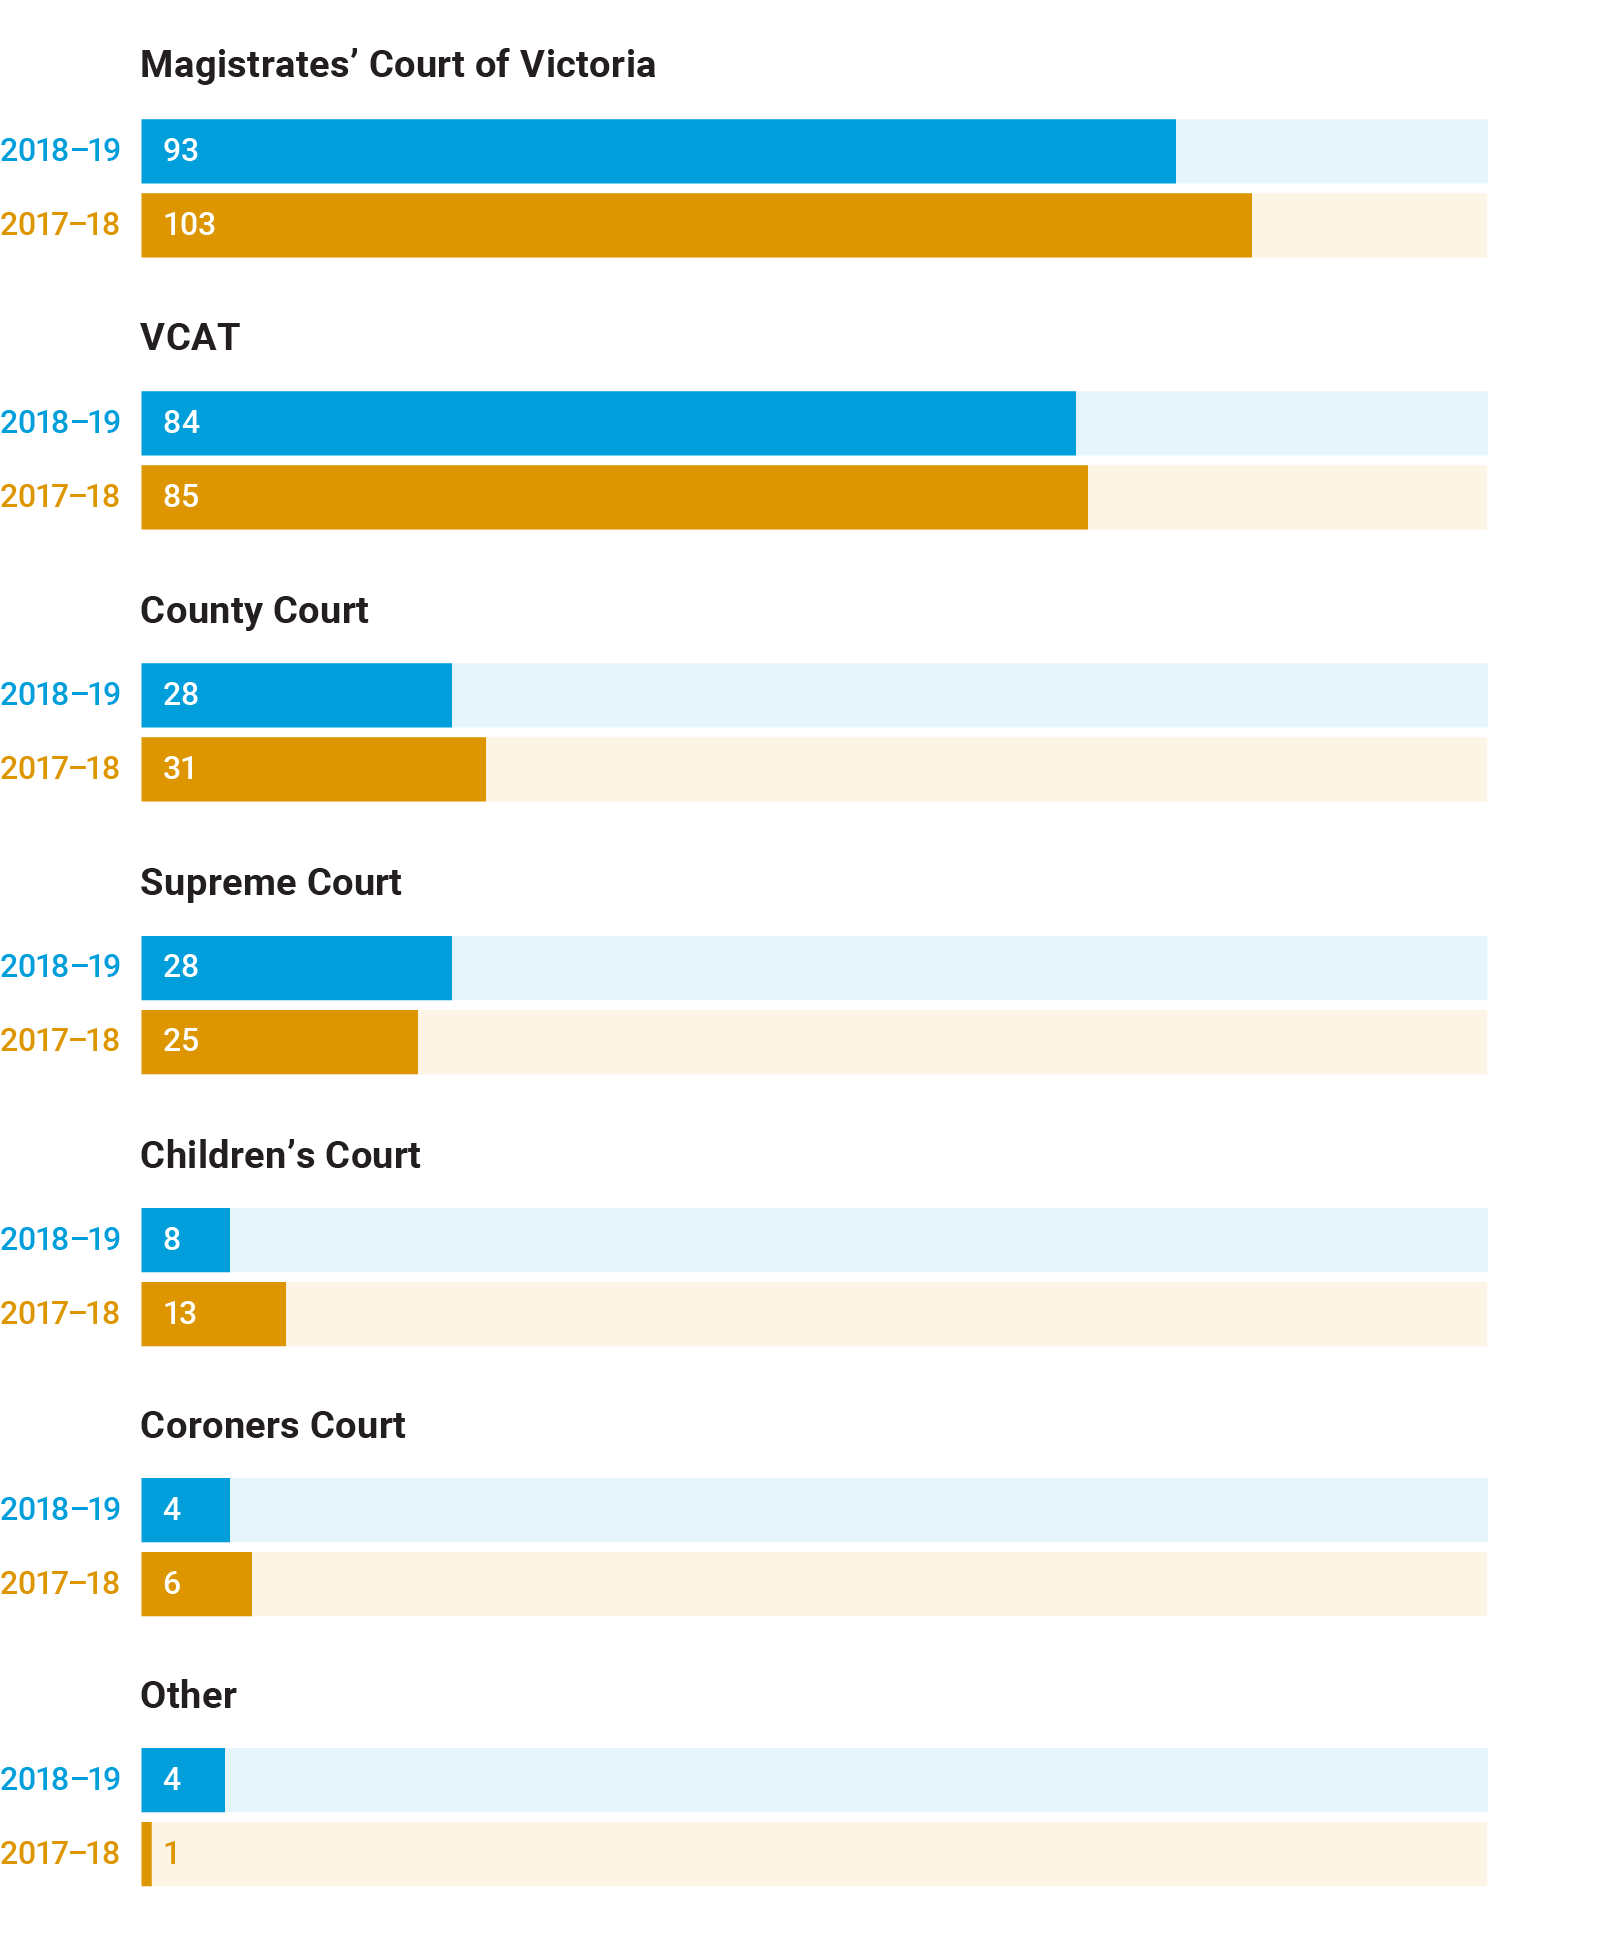 Graphic depicting the number of complaints and referrals received by the Judicial Commission of Victoria by Jurisdiction